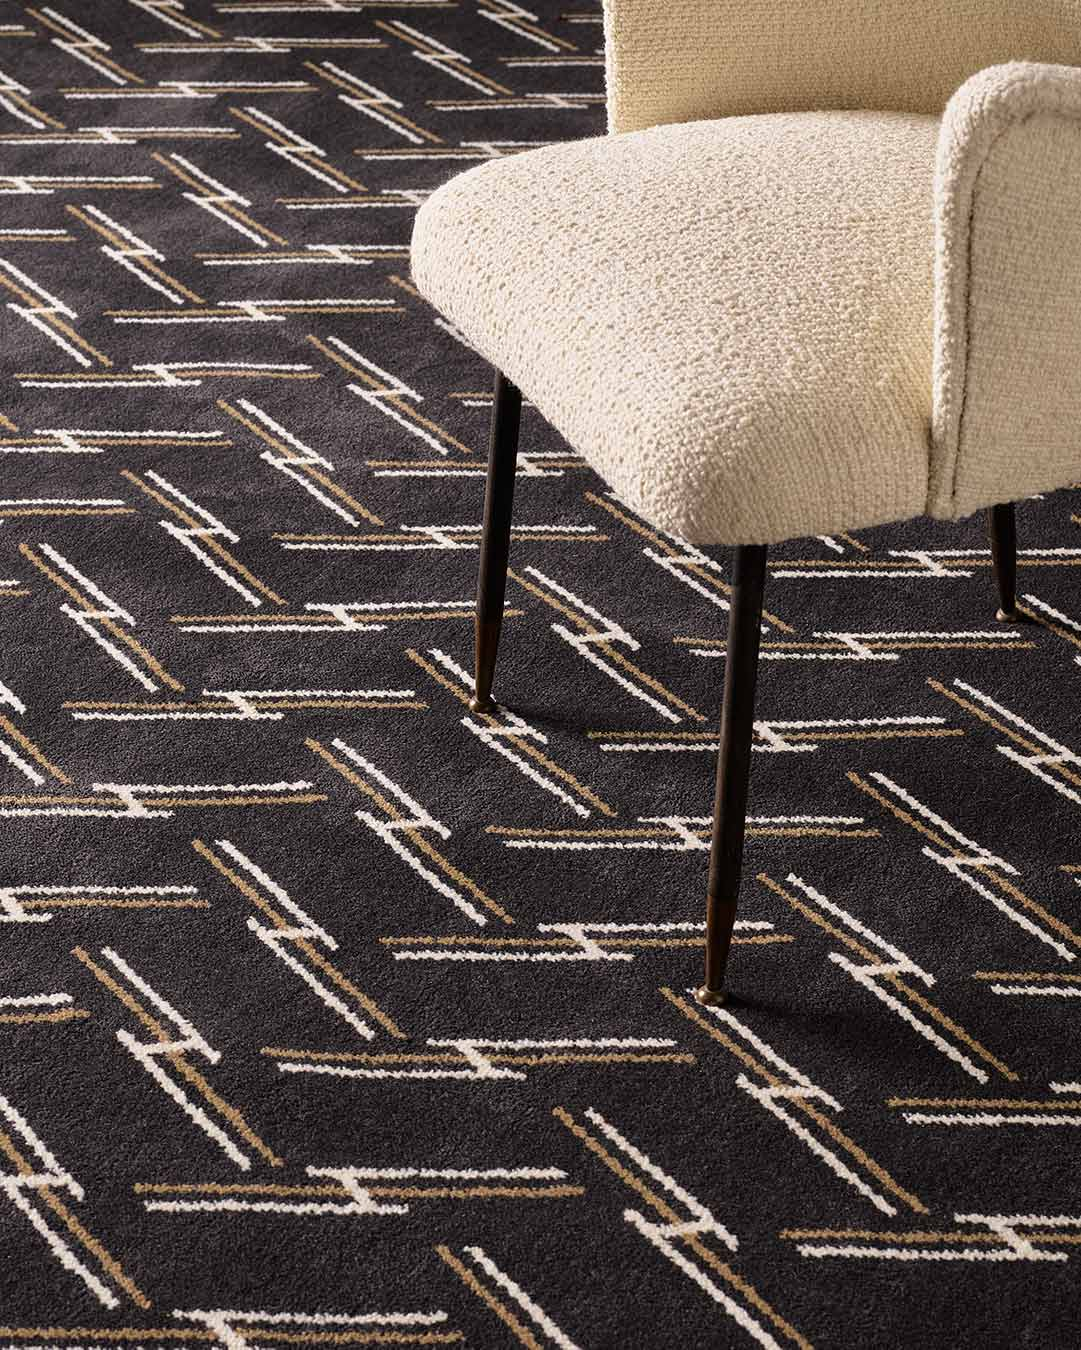 Close up view of Windsor brown geometric Axminster carpet by Greg Natale